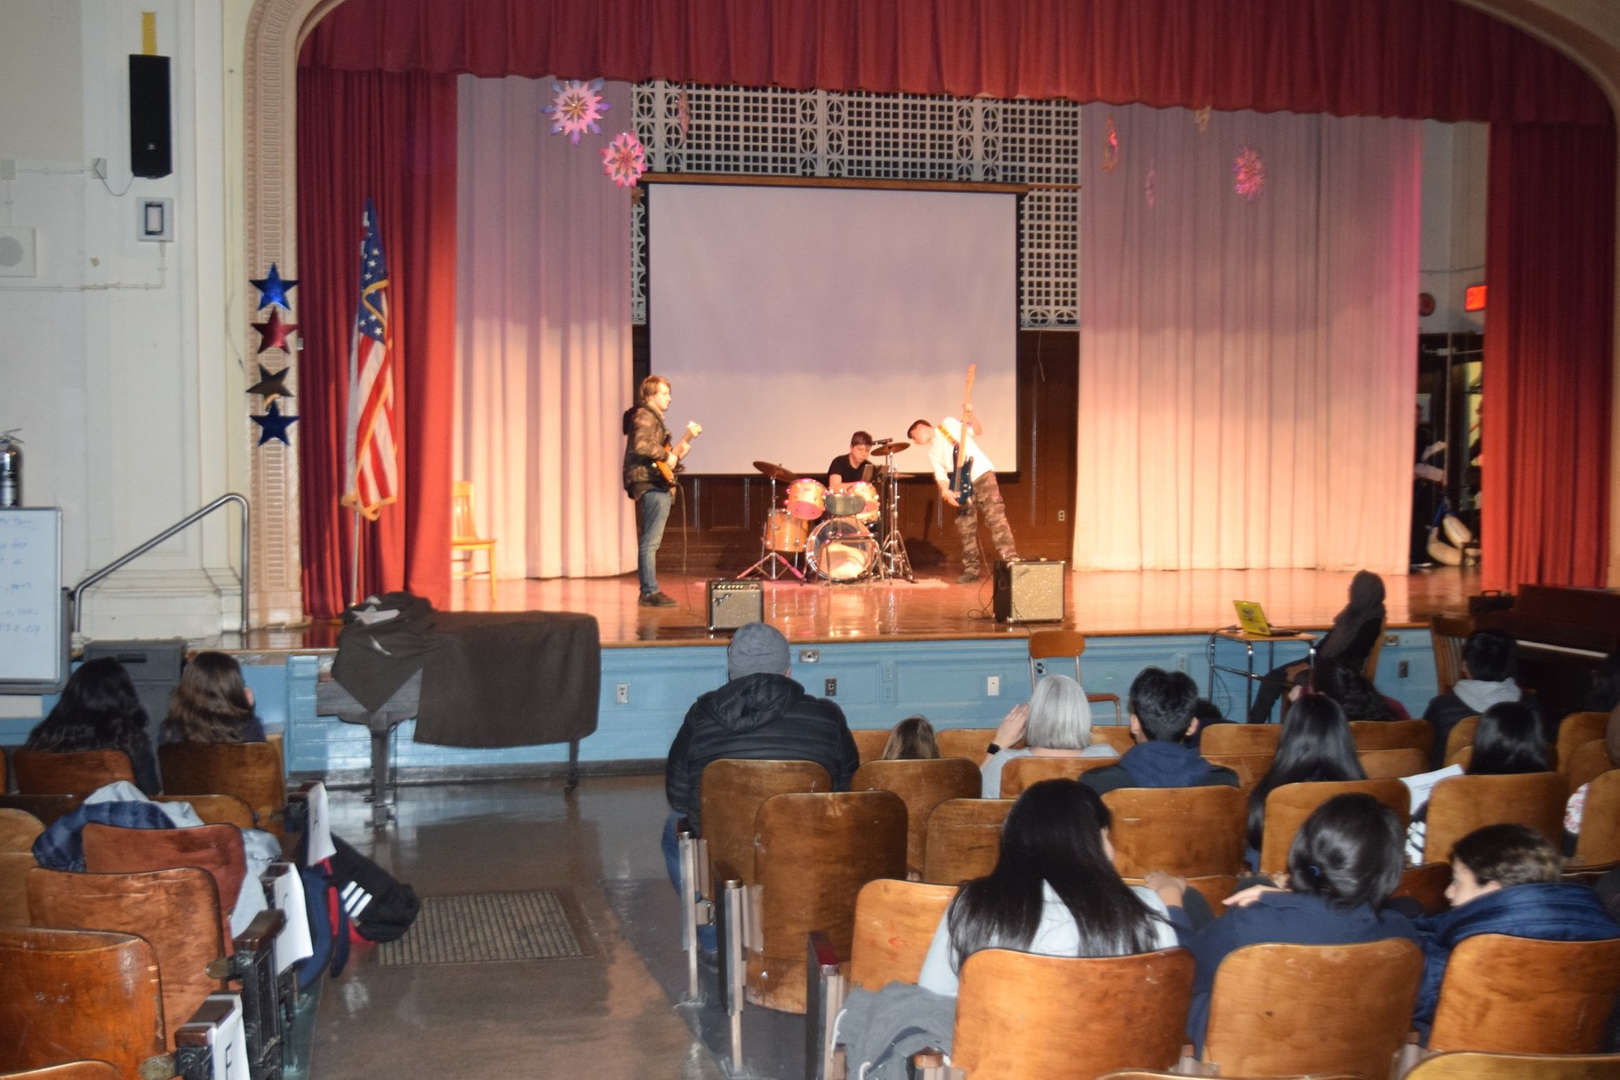 Academy holds its annual Talent Show at the beginning of the Spring Semester